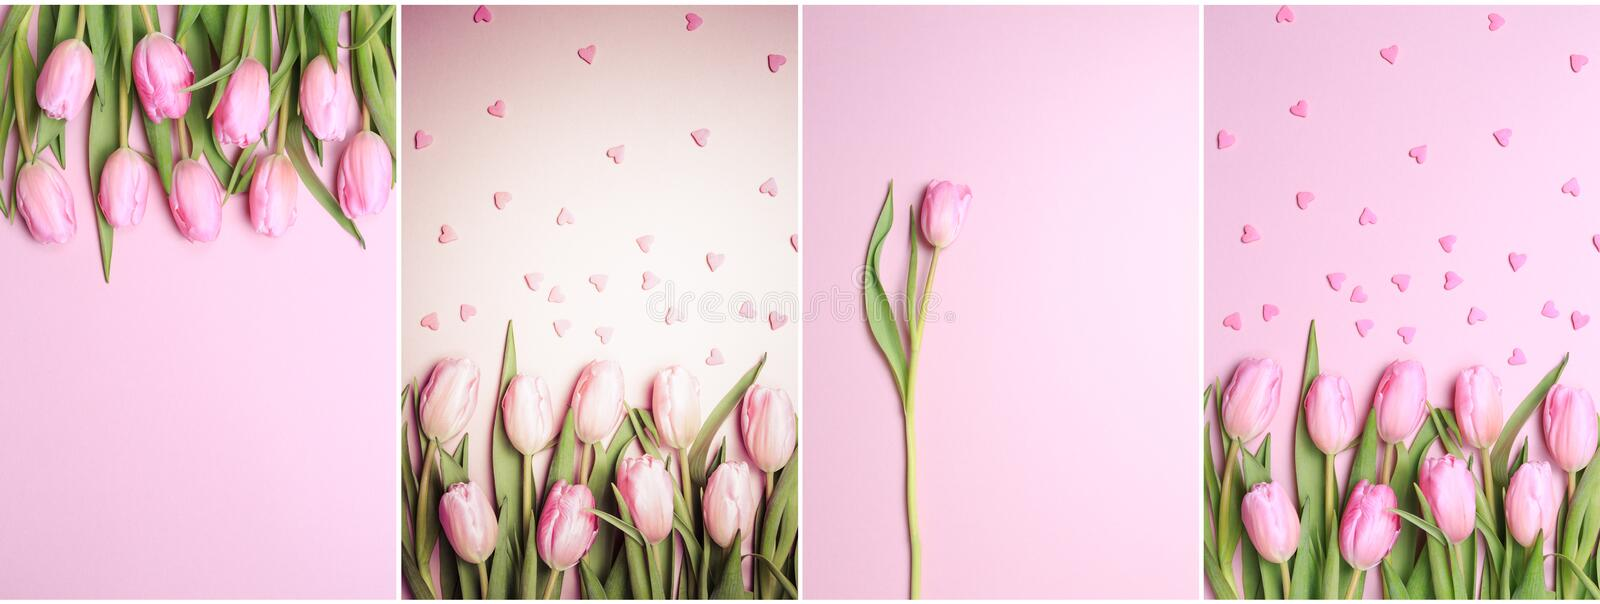 Collage of vertical pink tulips photos on the pink background. F. Lat lay, top view. Valentines, spring and mother`s day background royalty free stock photo